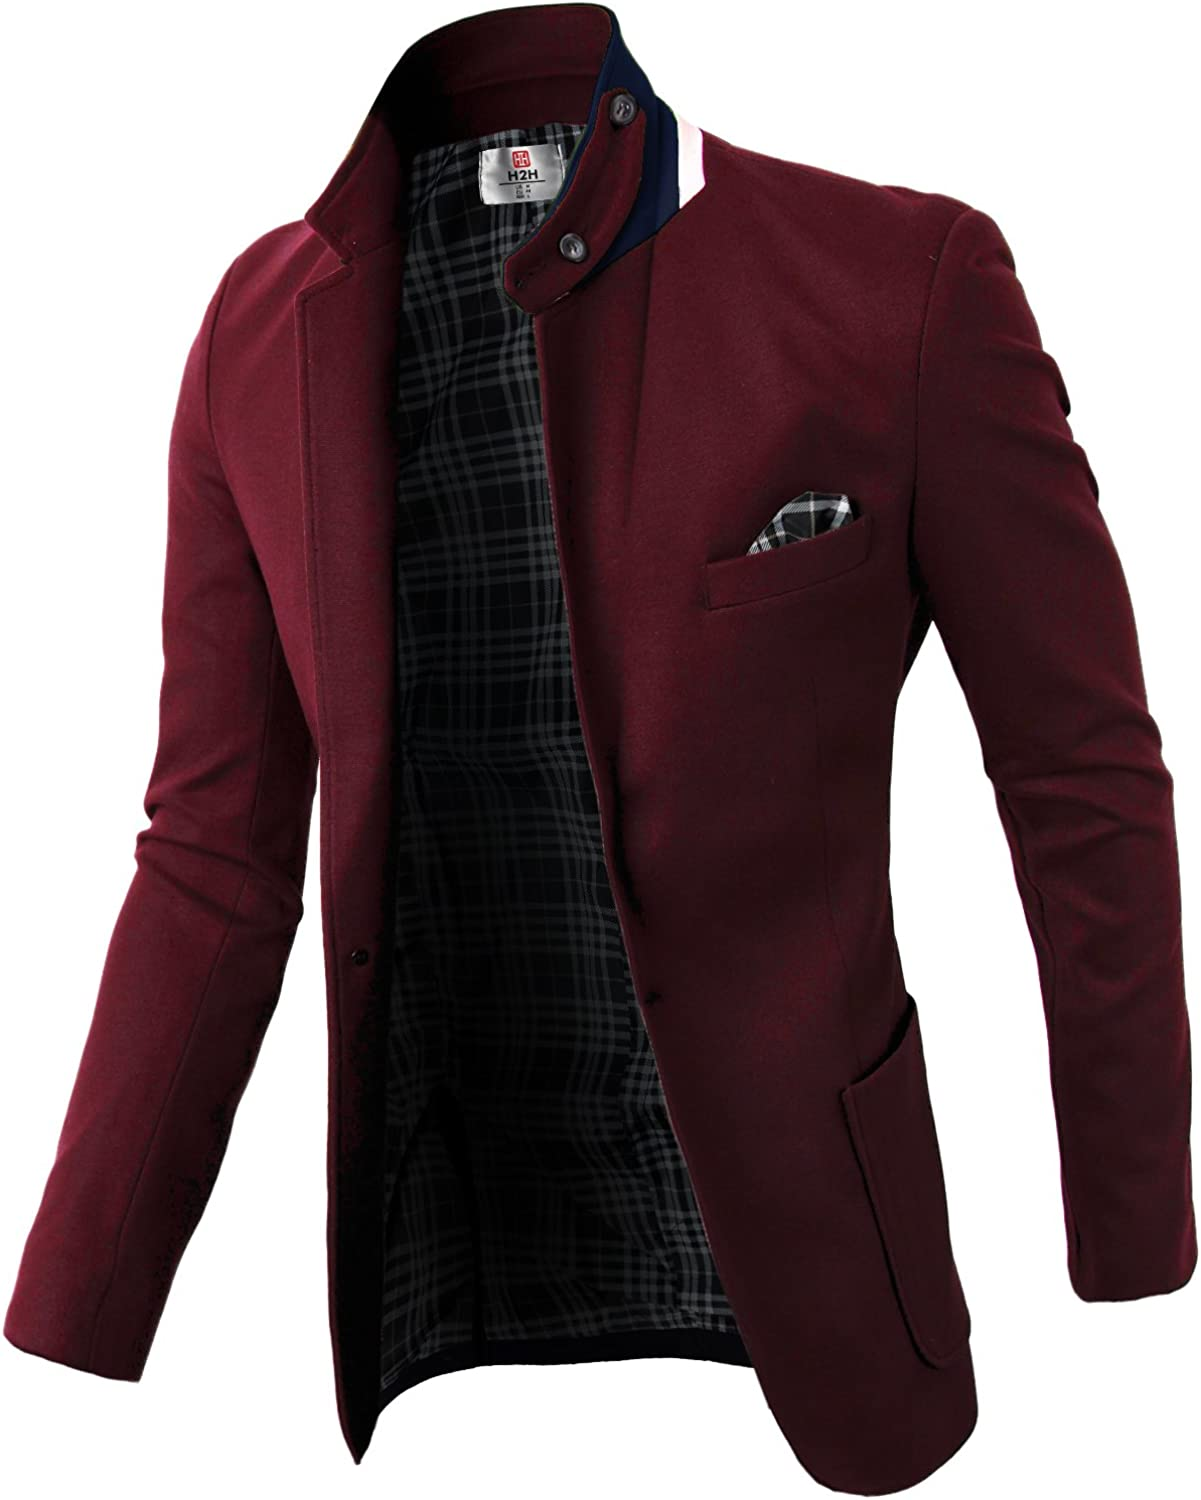 H2H Mens Casual Slim Fit Jackets Single Breasted Business Jackets Suit